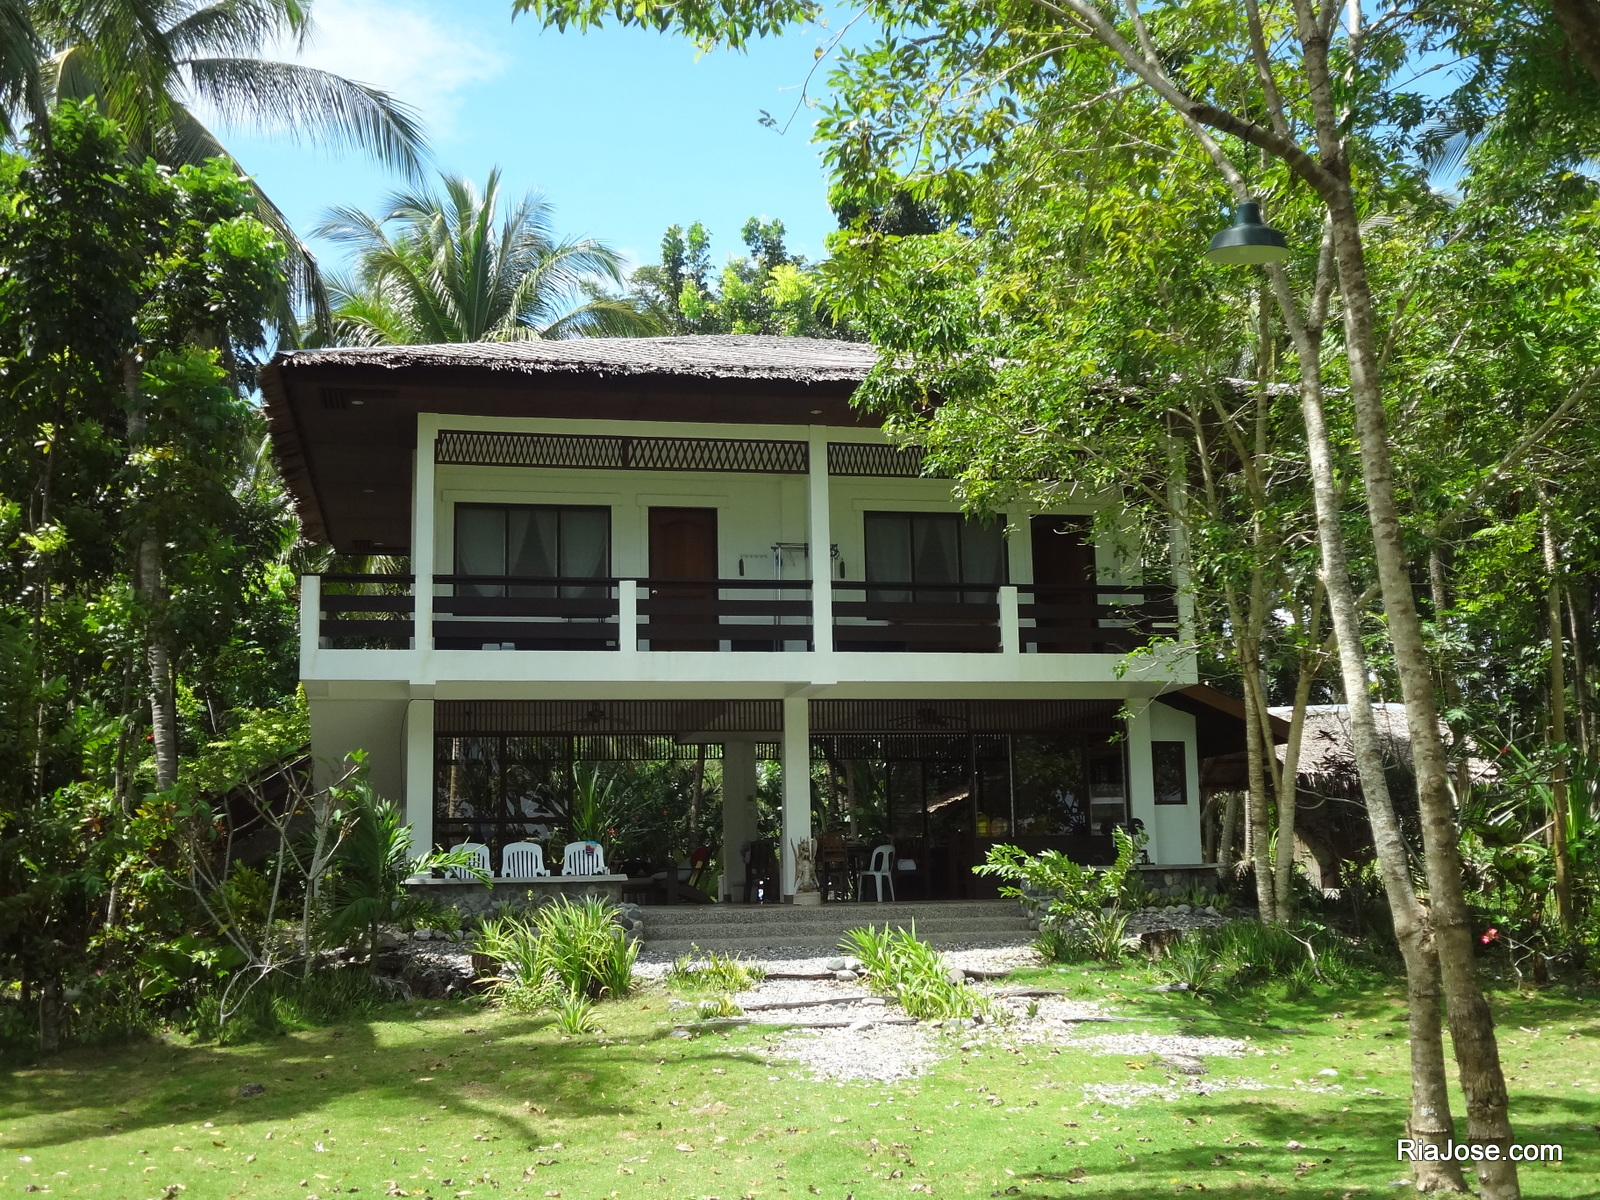 One of the houses in Kanakbai in Dahican, Mati, Davao Oriental